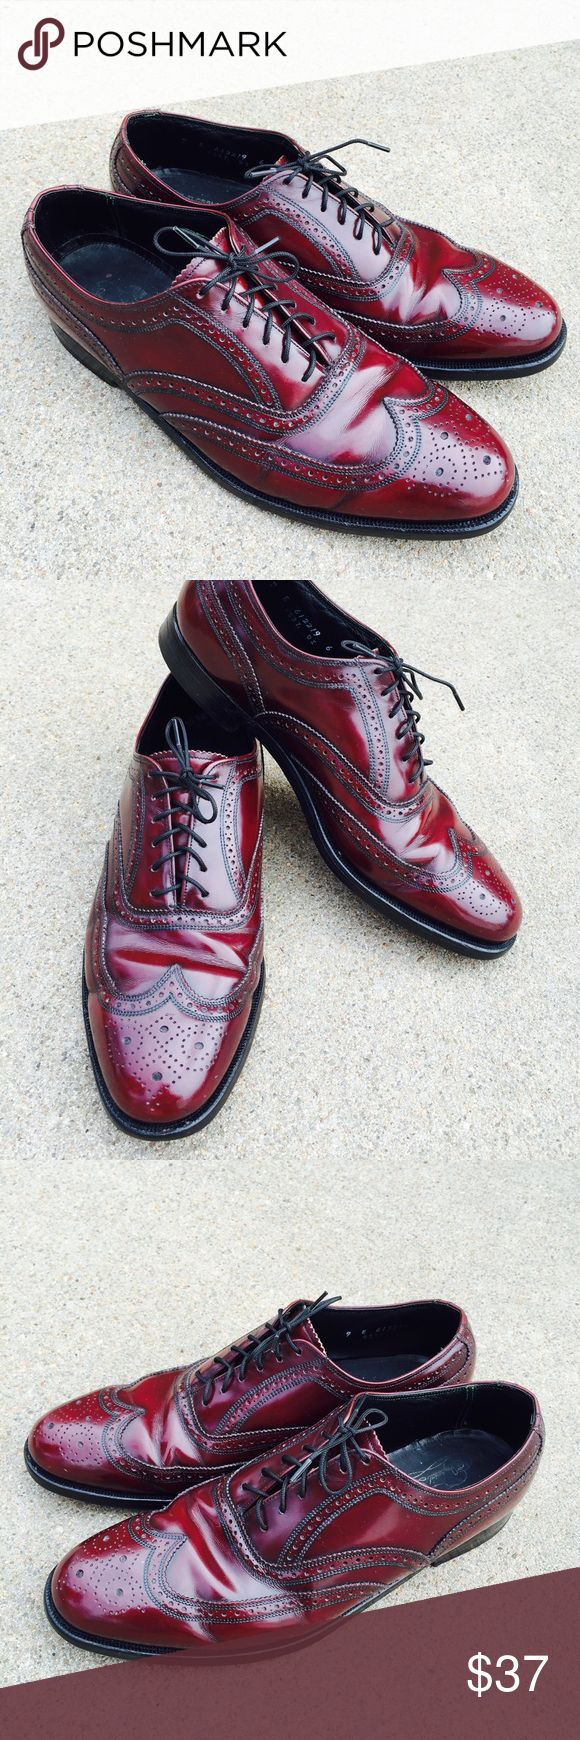 Florsheim Imperial Men's Dress Shoes Burgundy Florsheim Imperial men's shoes burgundy leather wingtip OXFORD brogue Size 9E Condition: Pre-owned, some wear inside and outside. Florsheim Shoes Oxfords & Derbys